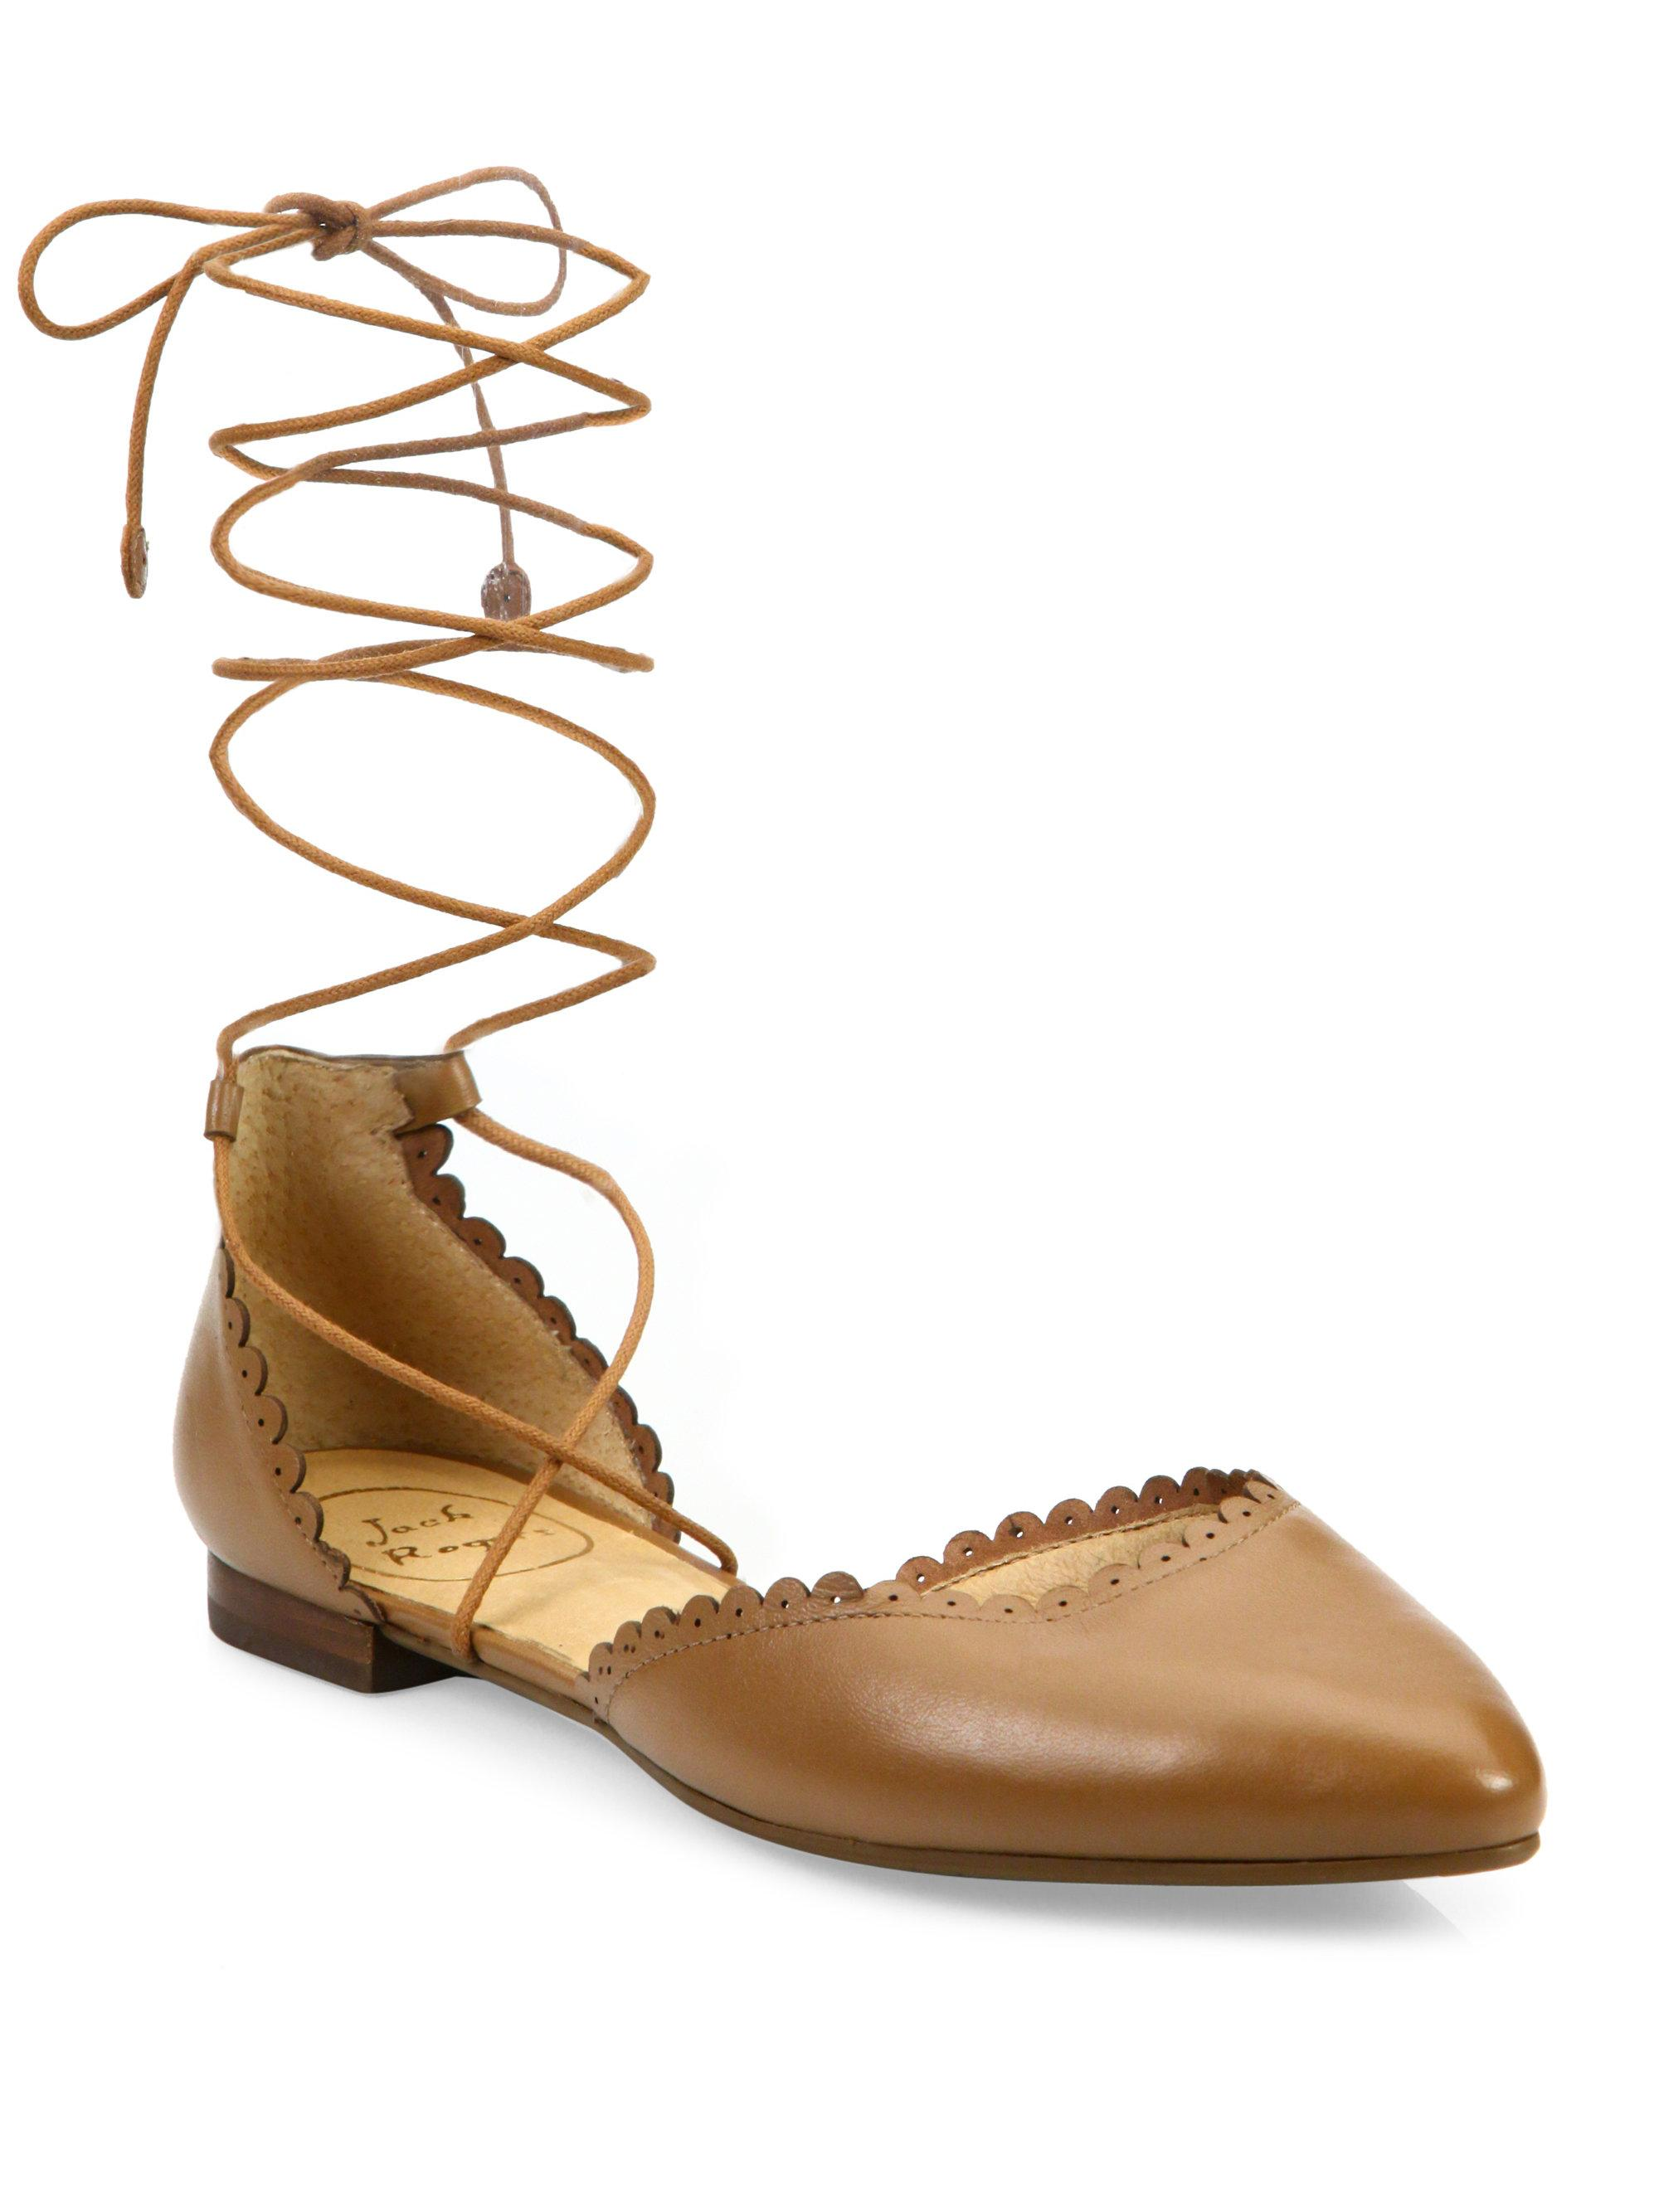 Jack Rogers. Women's Camille Leather Lace-up Flats